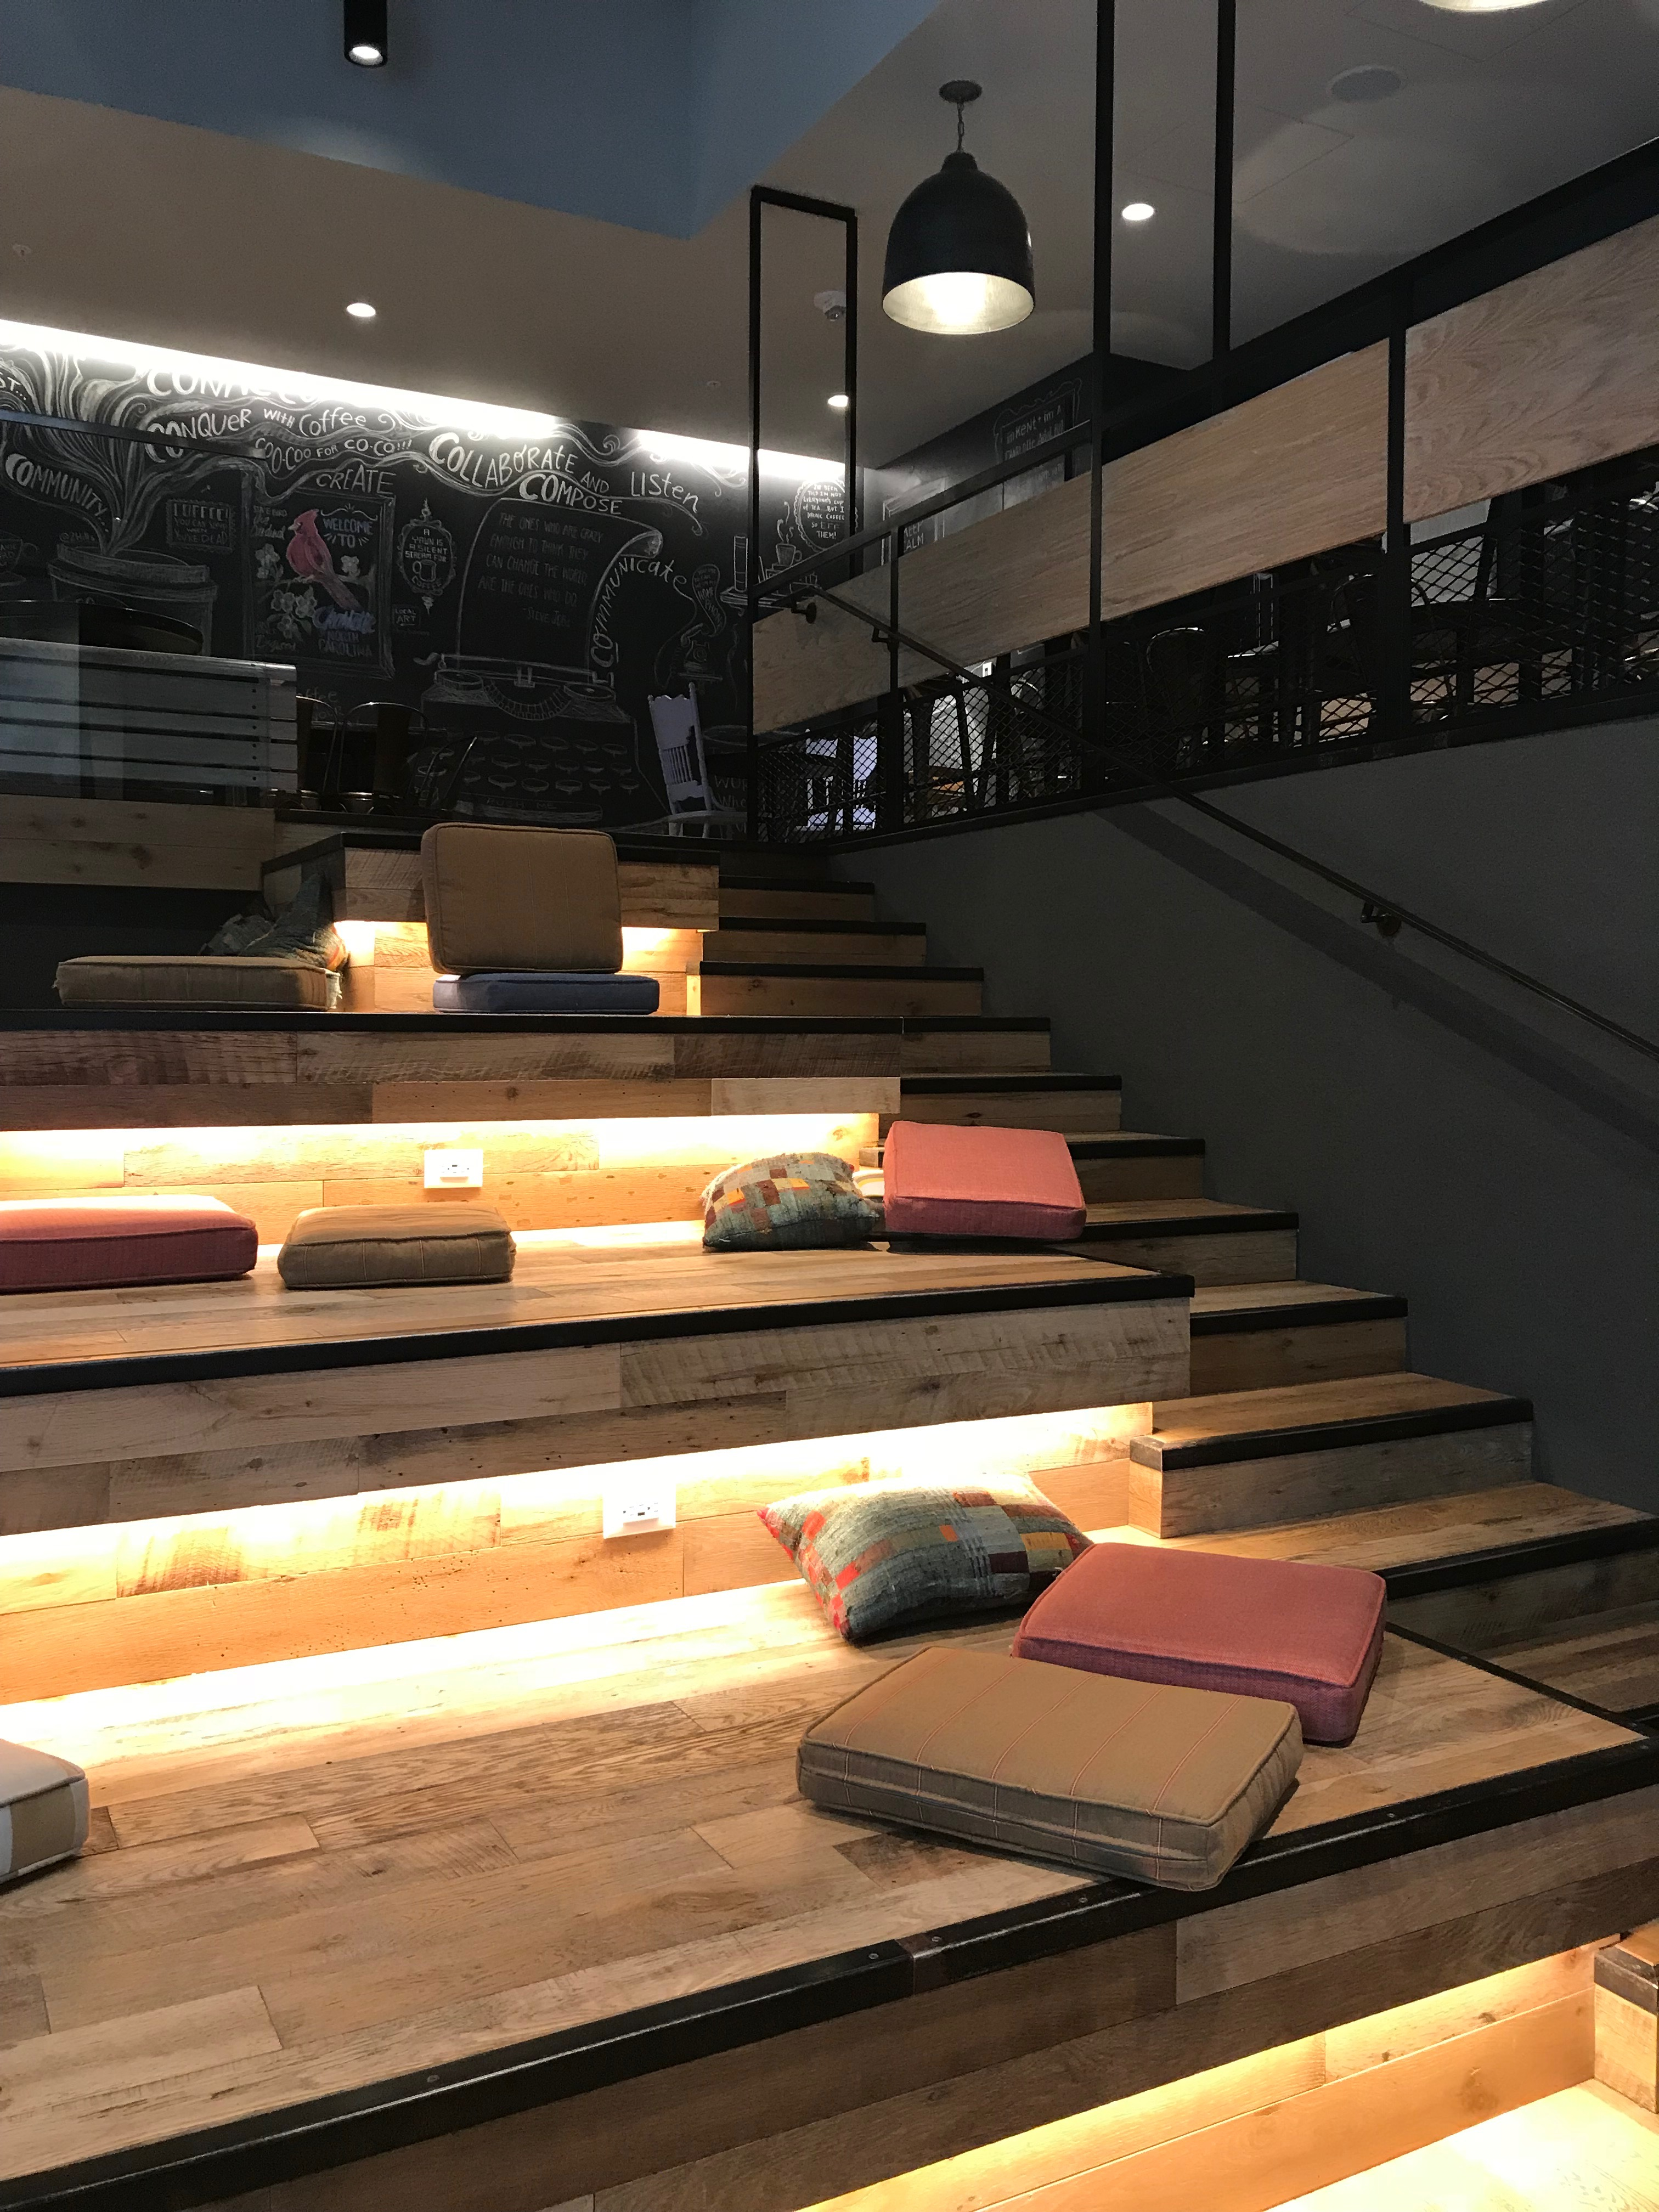 staircase with pillows for watching tv or reading at coffee cafe charlotte nc